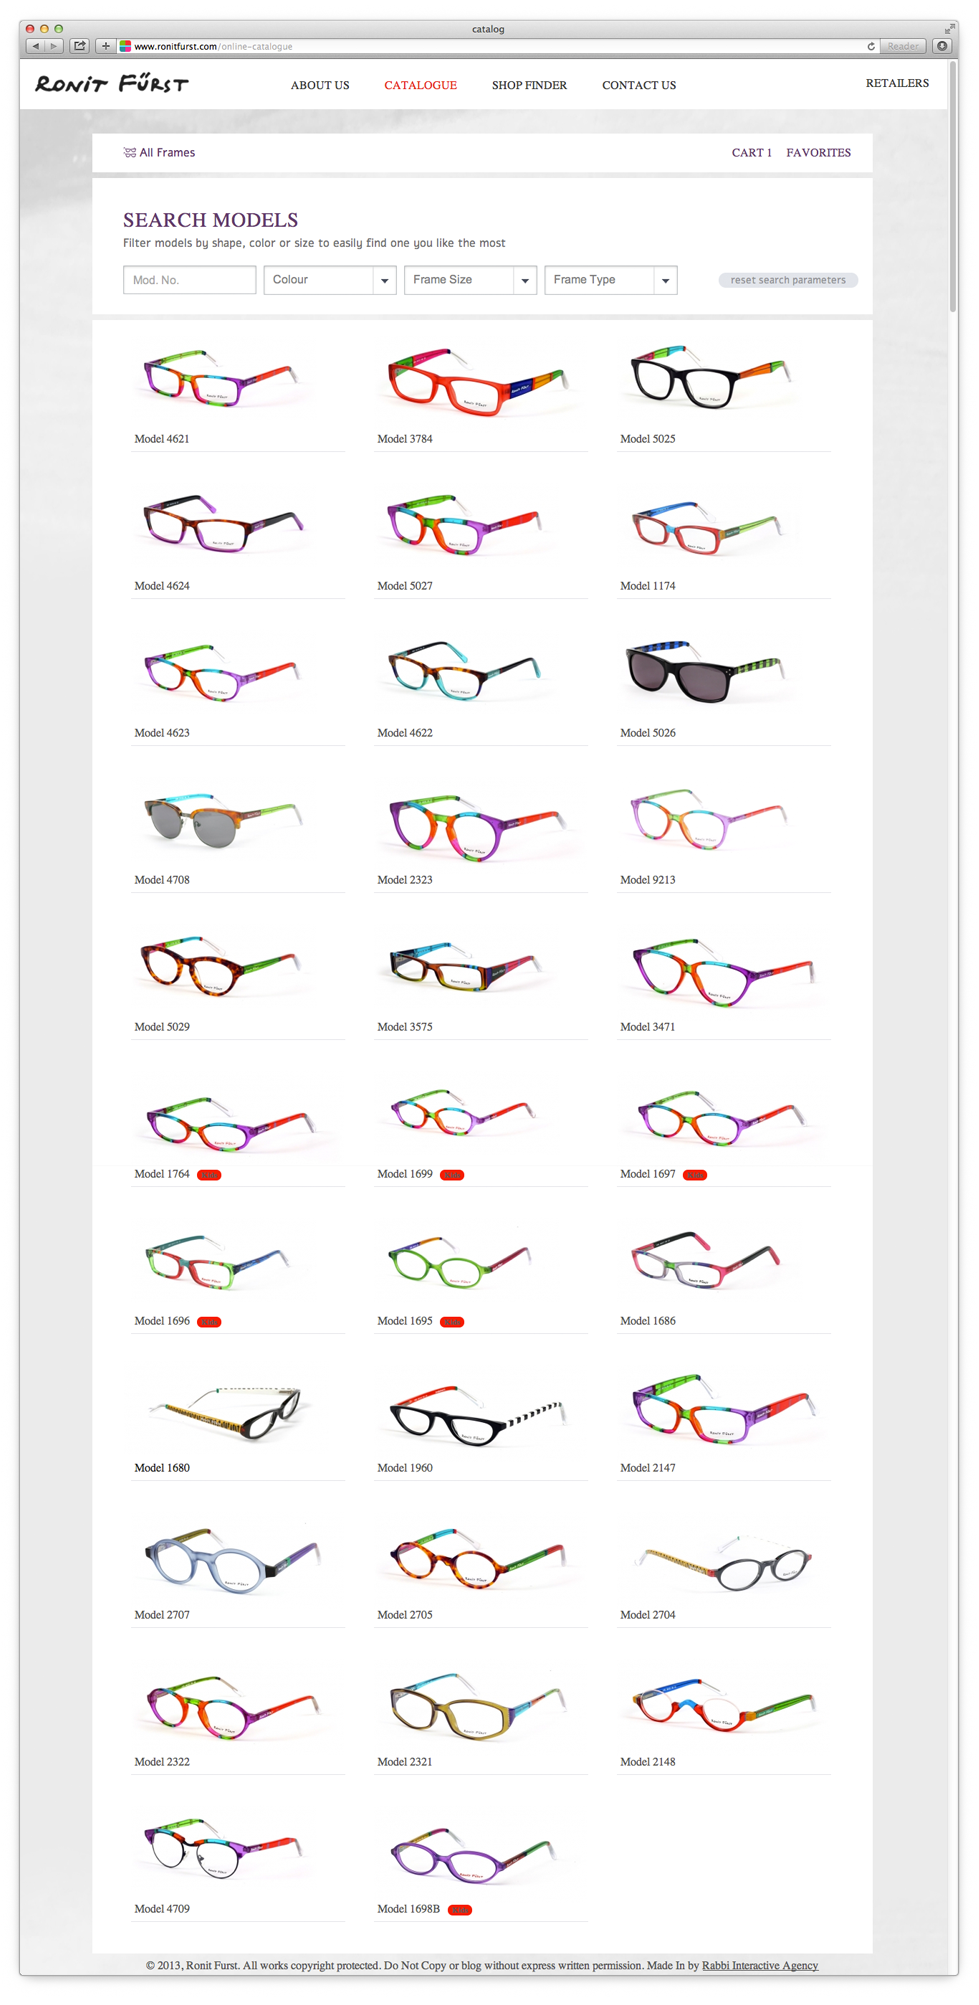 Viewing the Complete Glasses Catalog That Is Intelligently Updated in Real Time